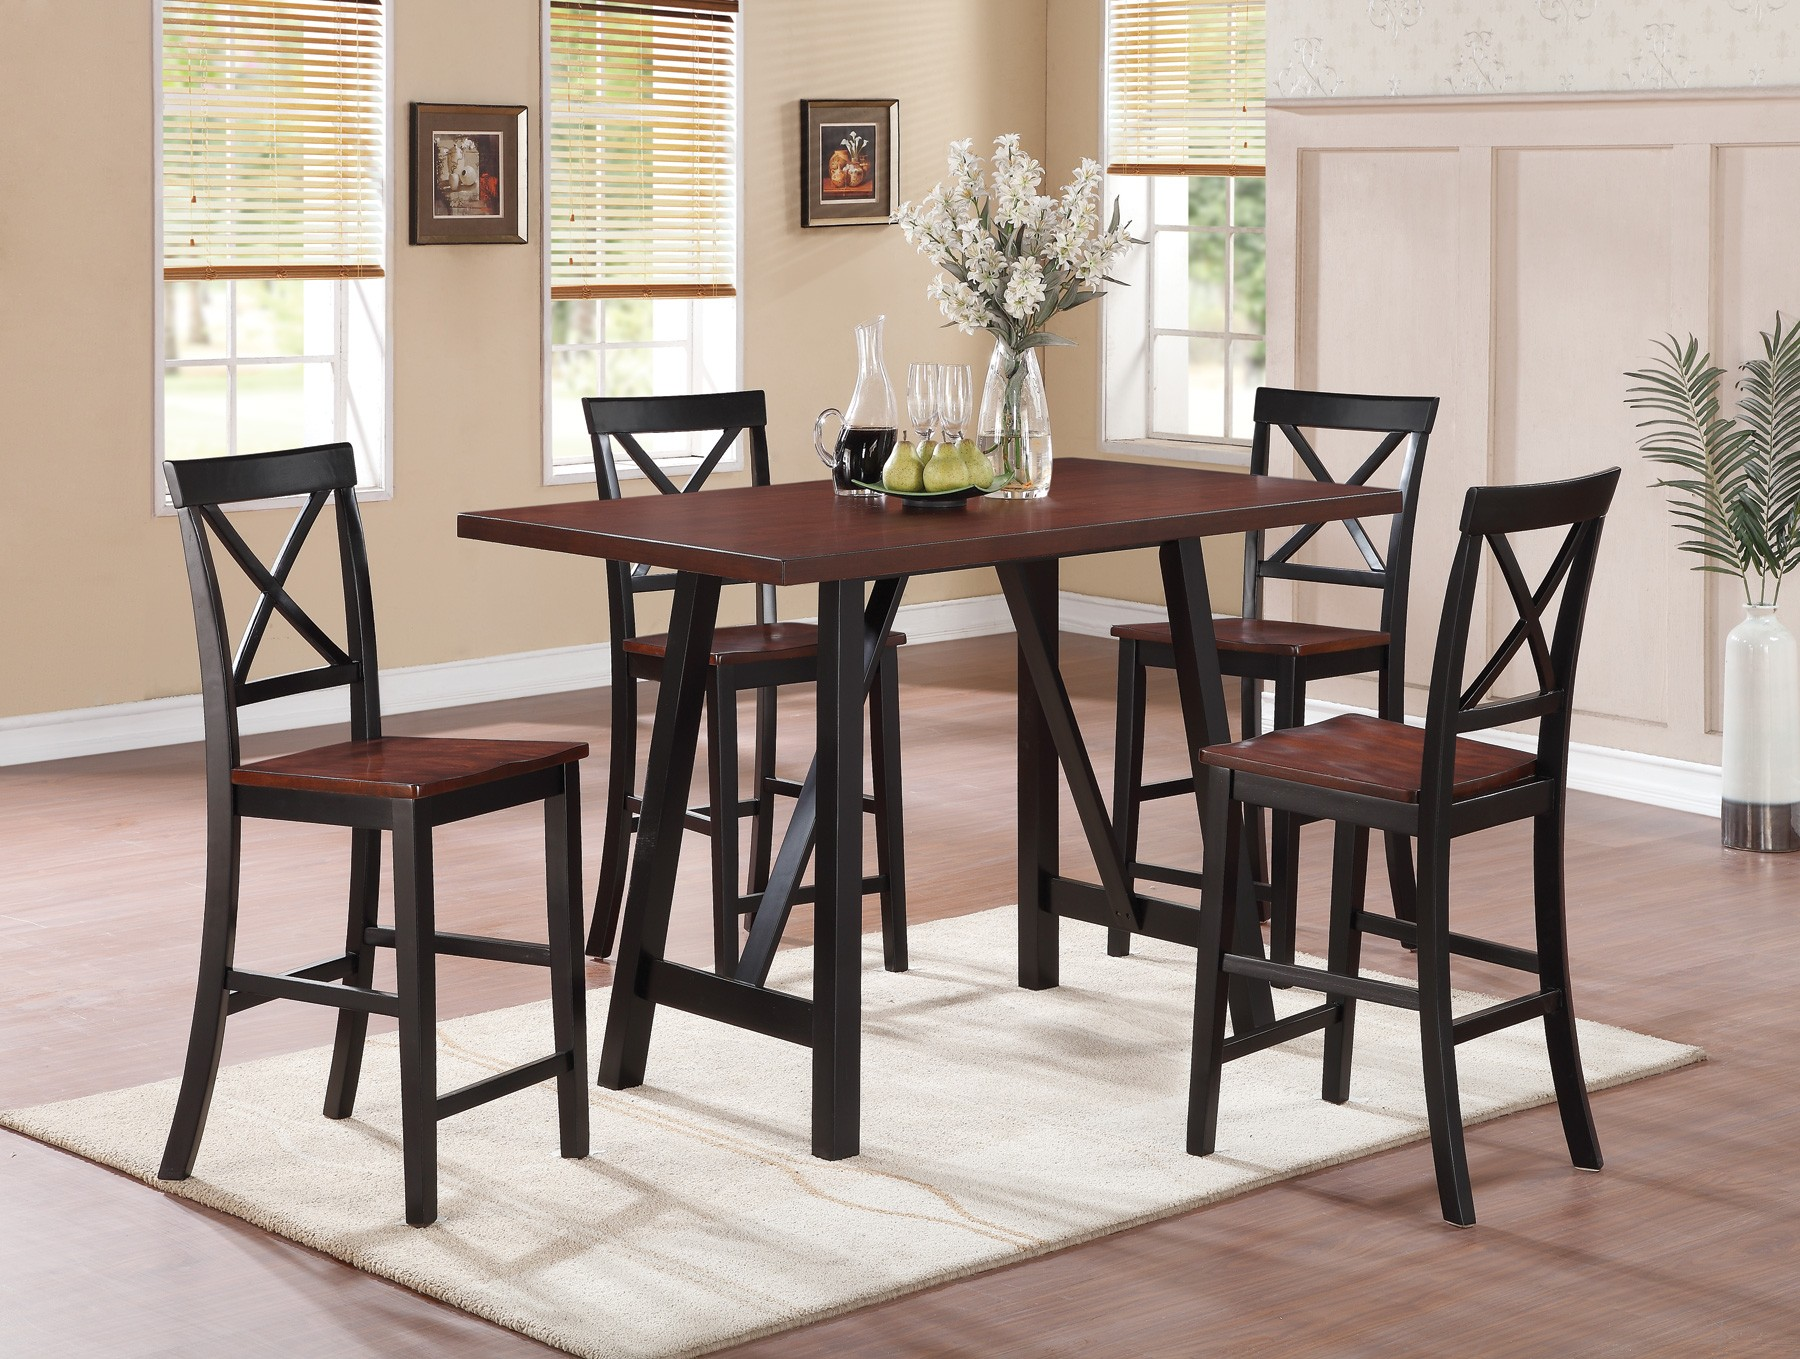 Makelim Black Walnut Counter Height Dining Room Set 104501 Coaster Furniture